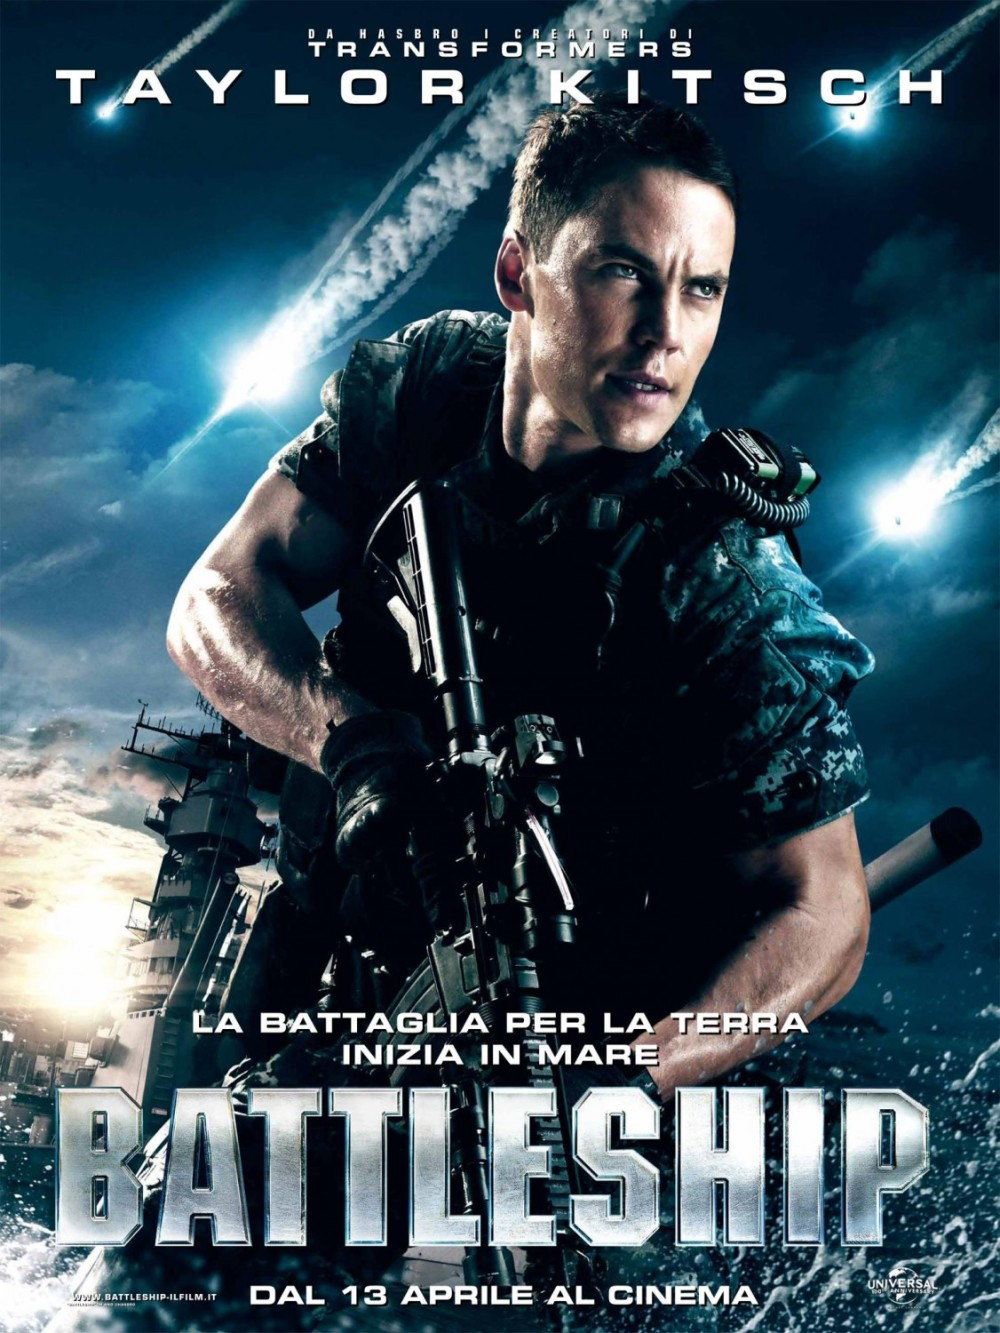 Vijf personageposters Battleship